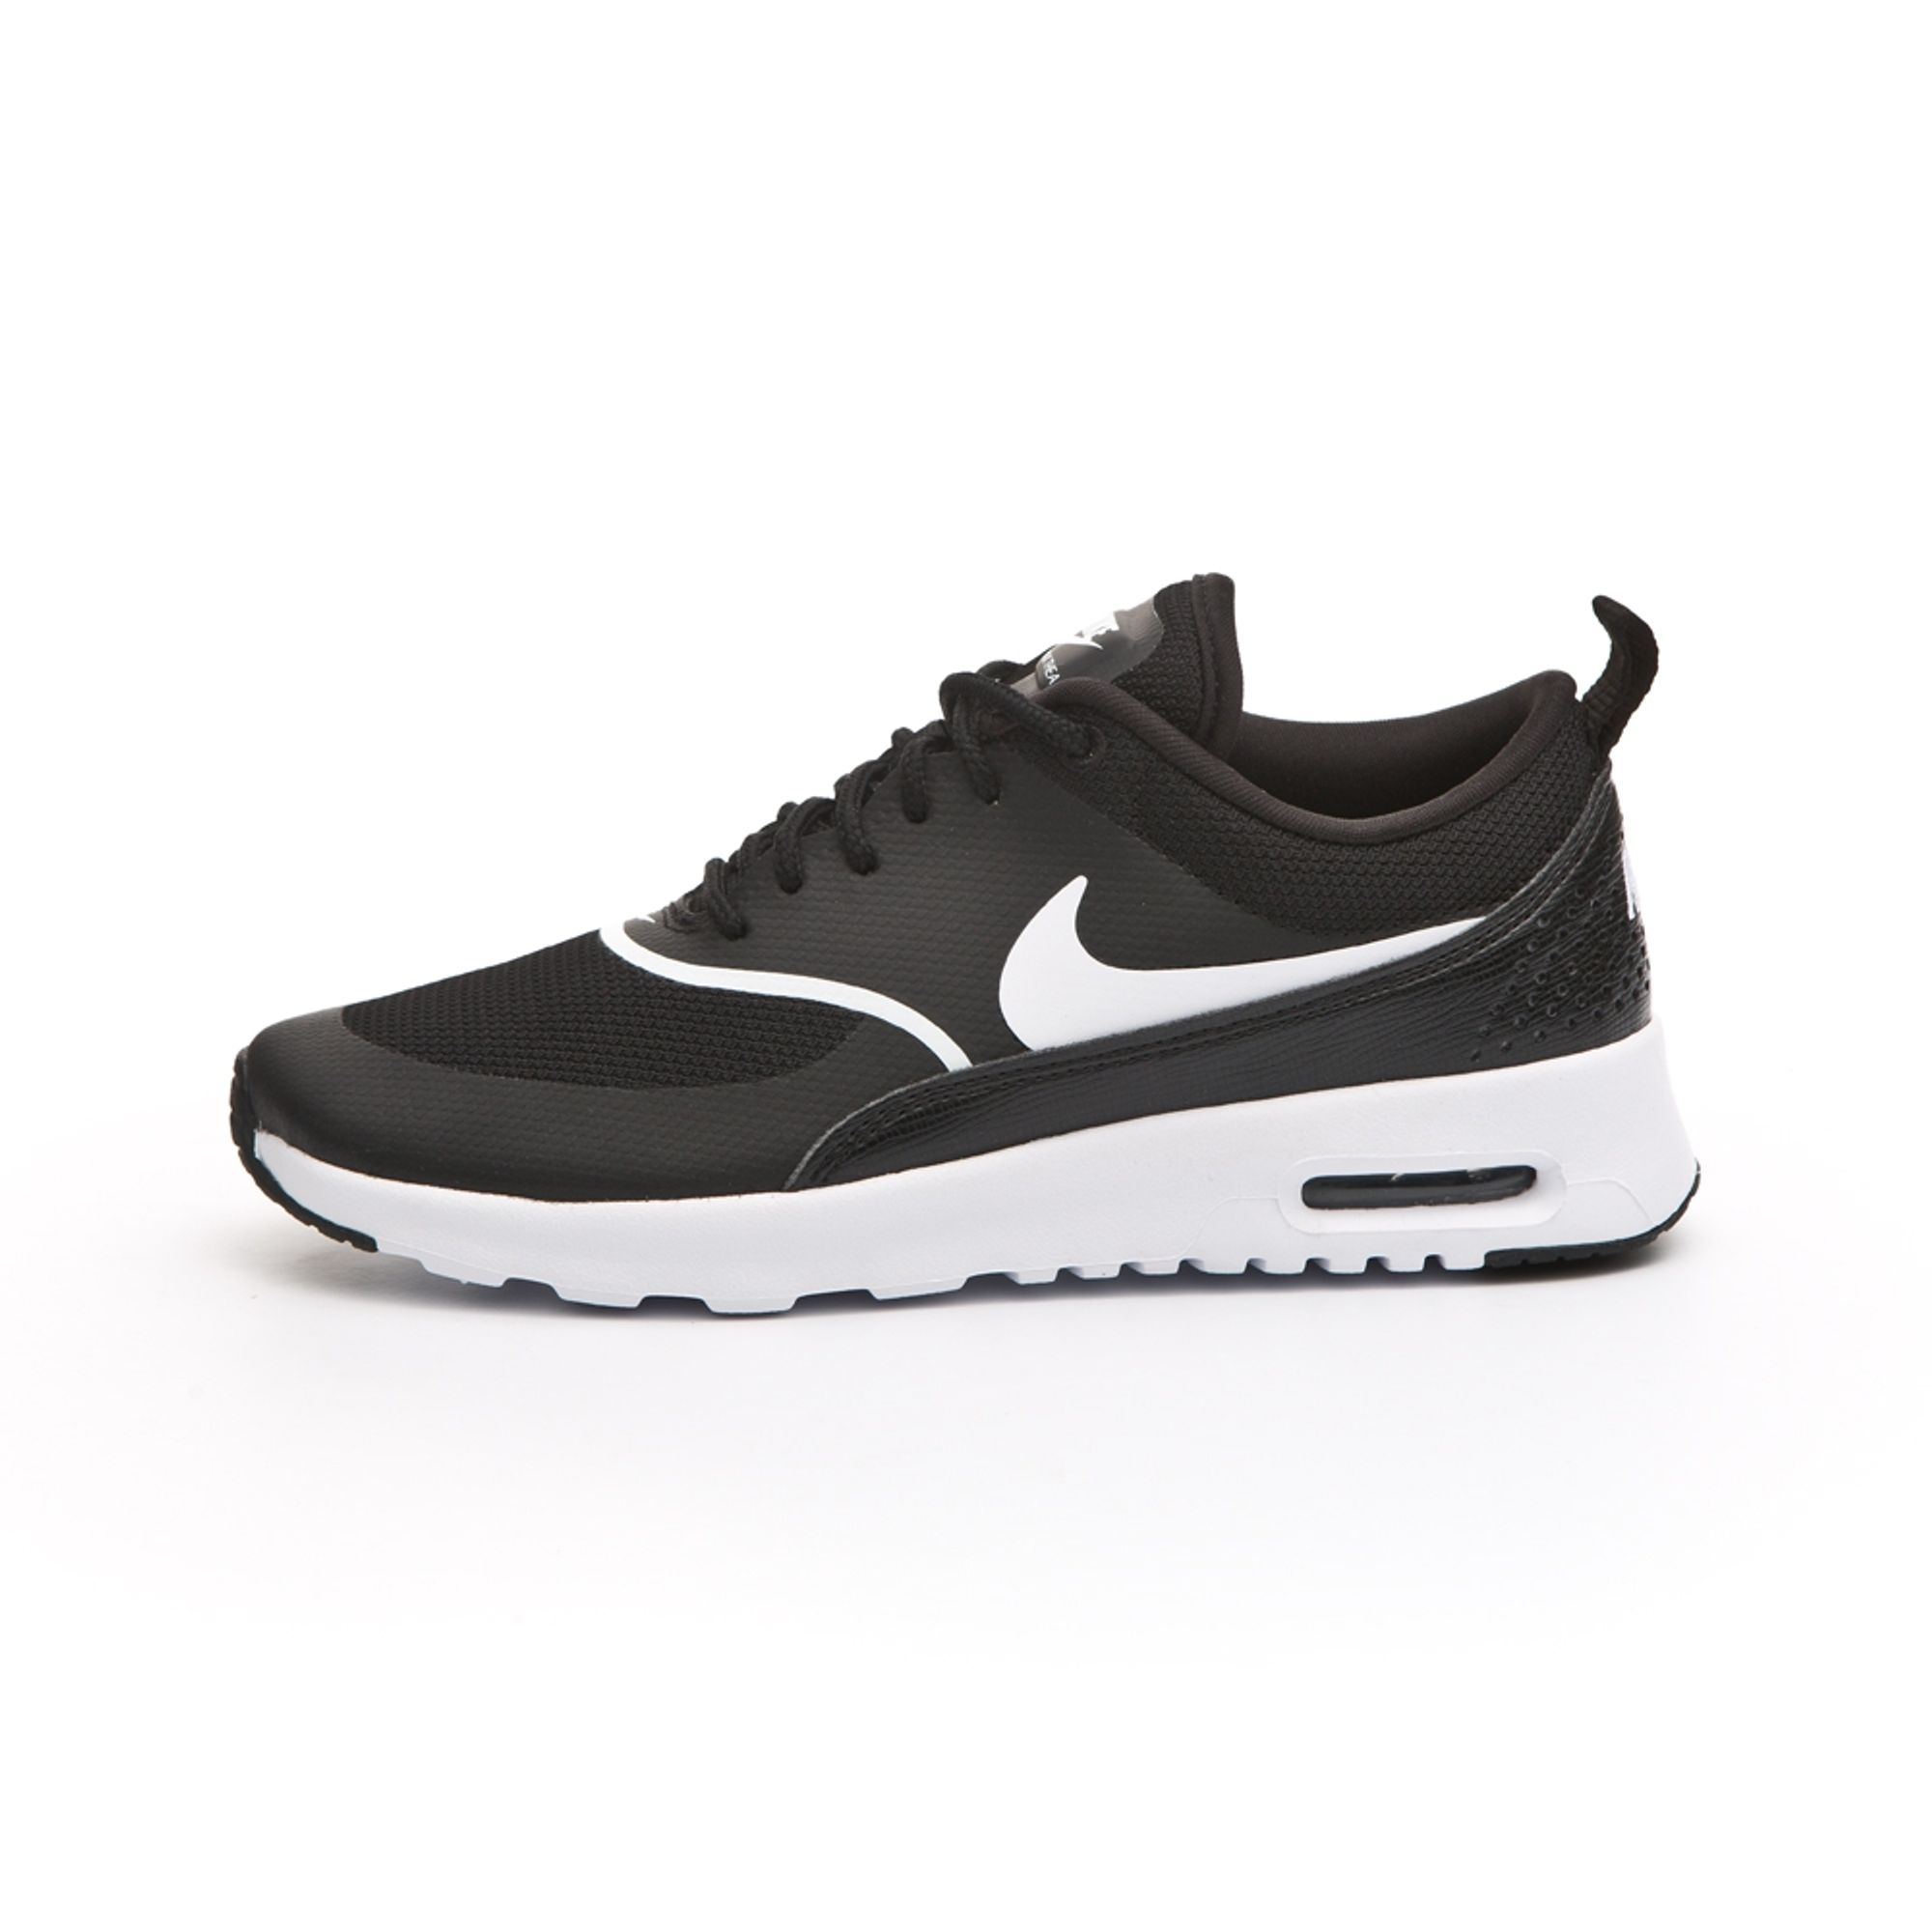 Mujer Agaval Nike 599409 028airmaxthe Tenis UMSzVp